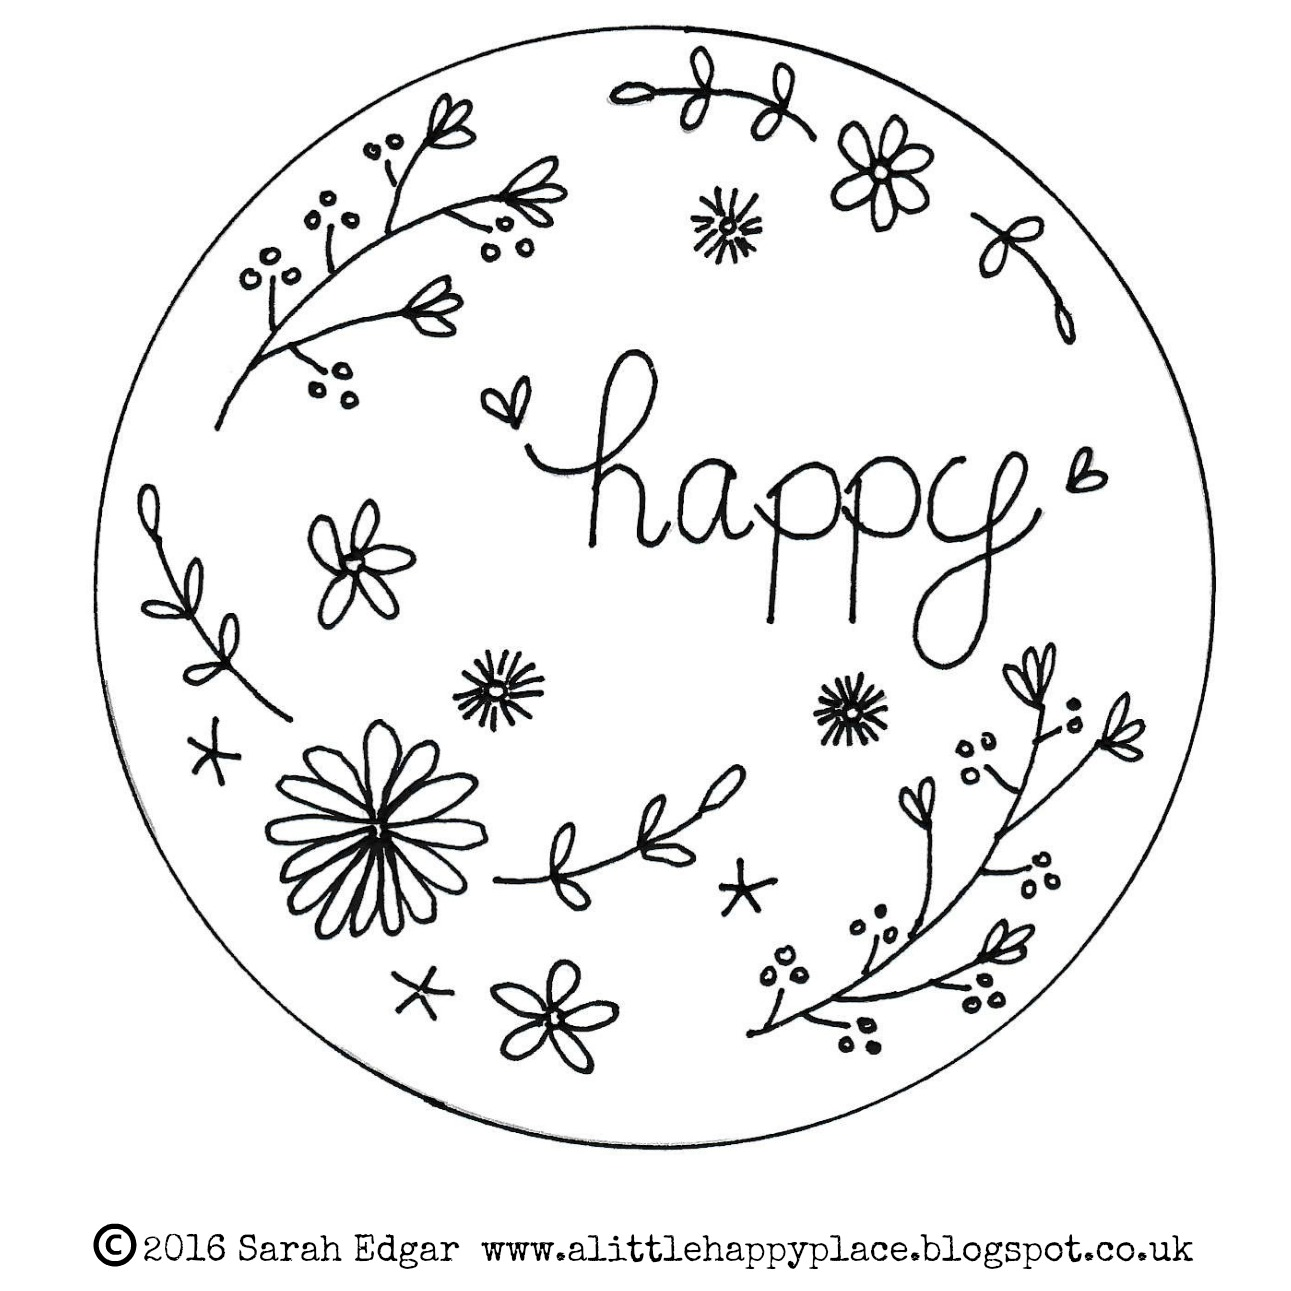 A little happy place stitches free embroidery pattern